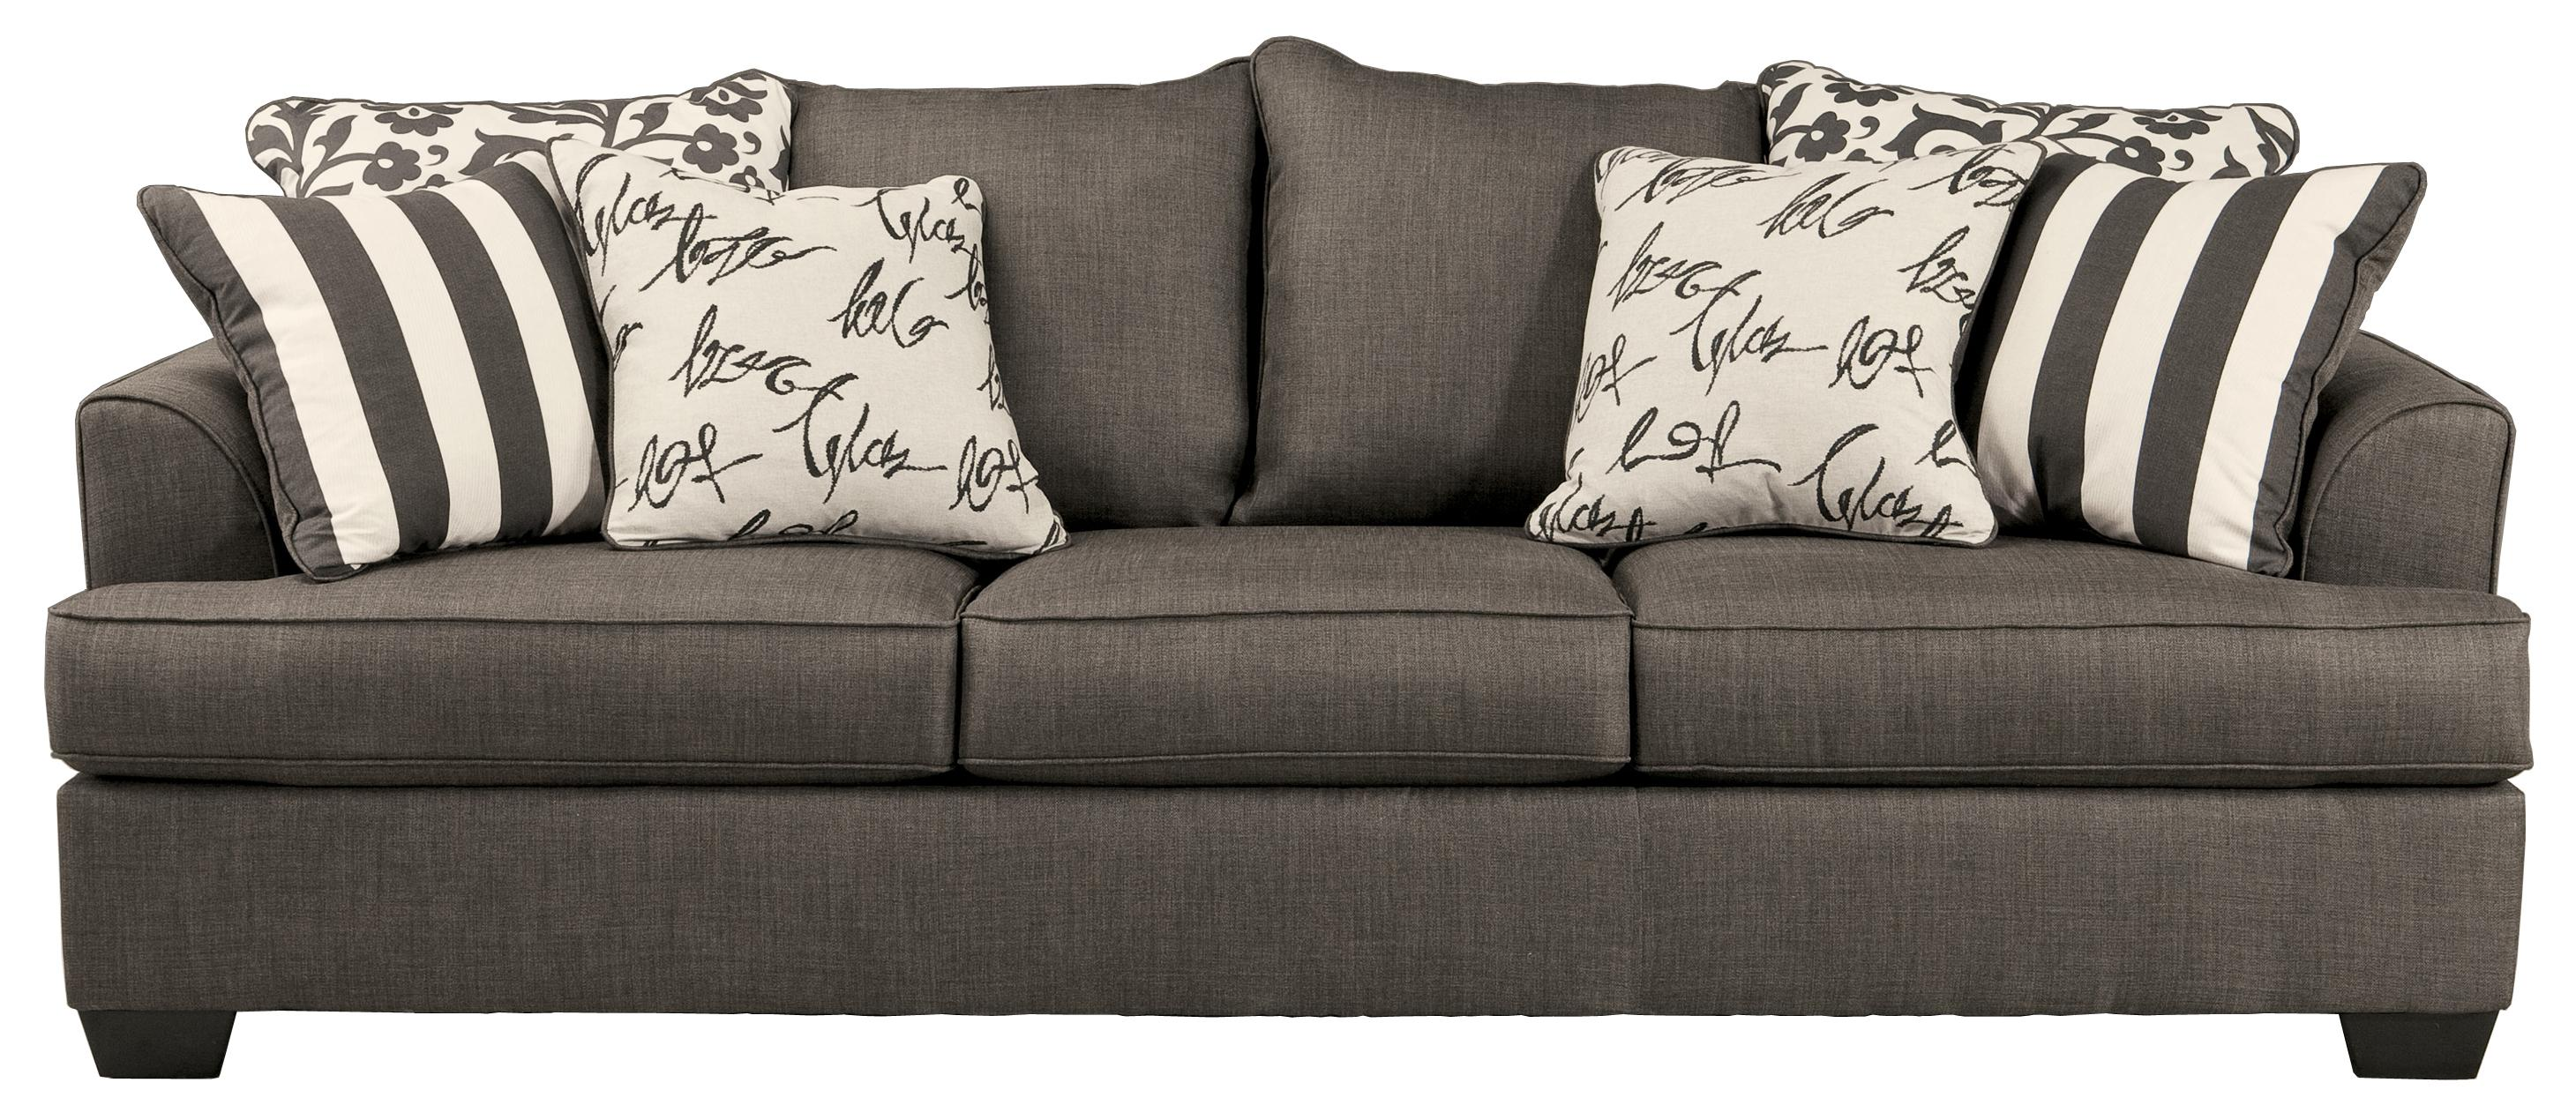 Sofa with Scatterback Pillows and Plush Coil Seat Cushions by